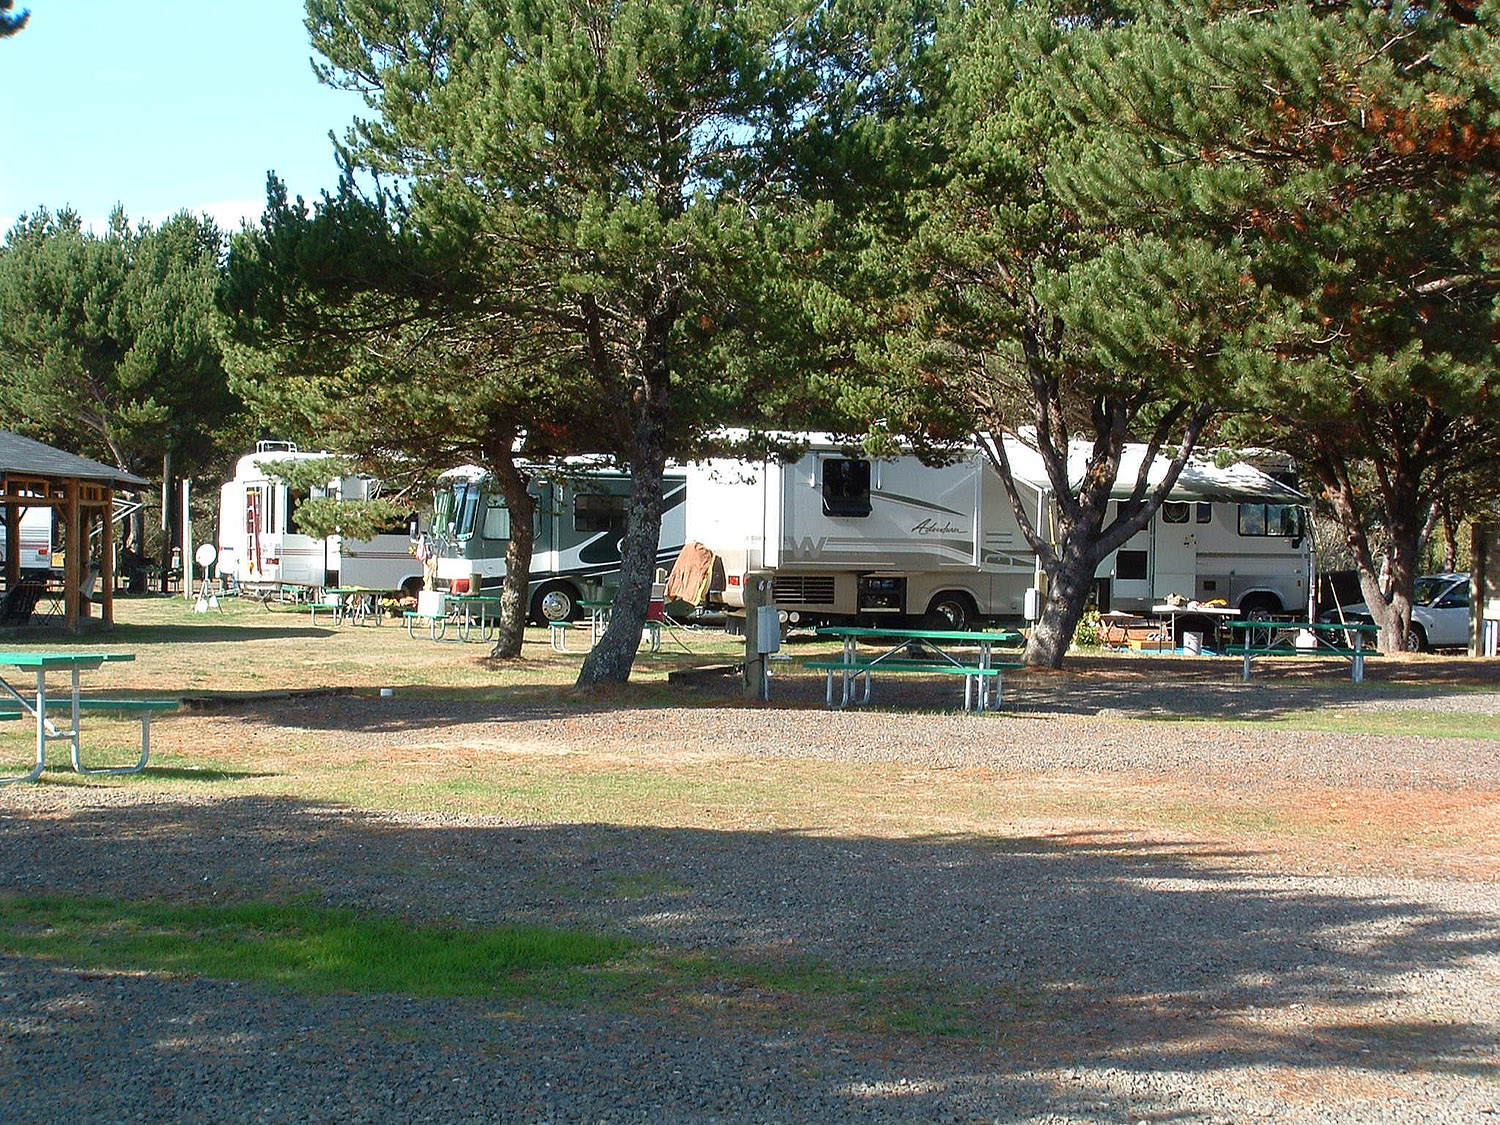 Room Tax added to Camp Fees Effective 11-1-16